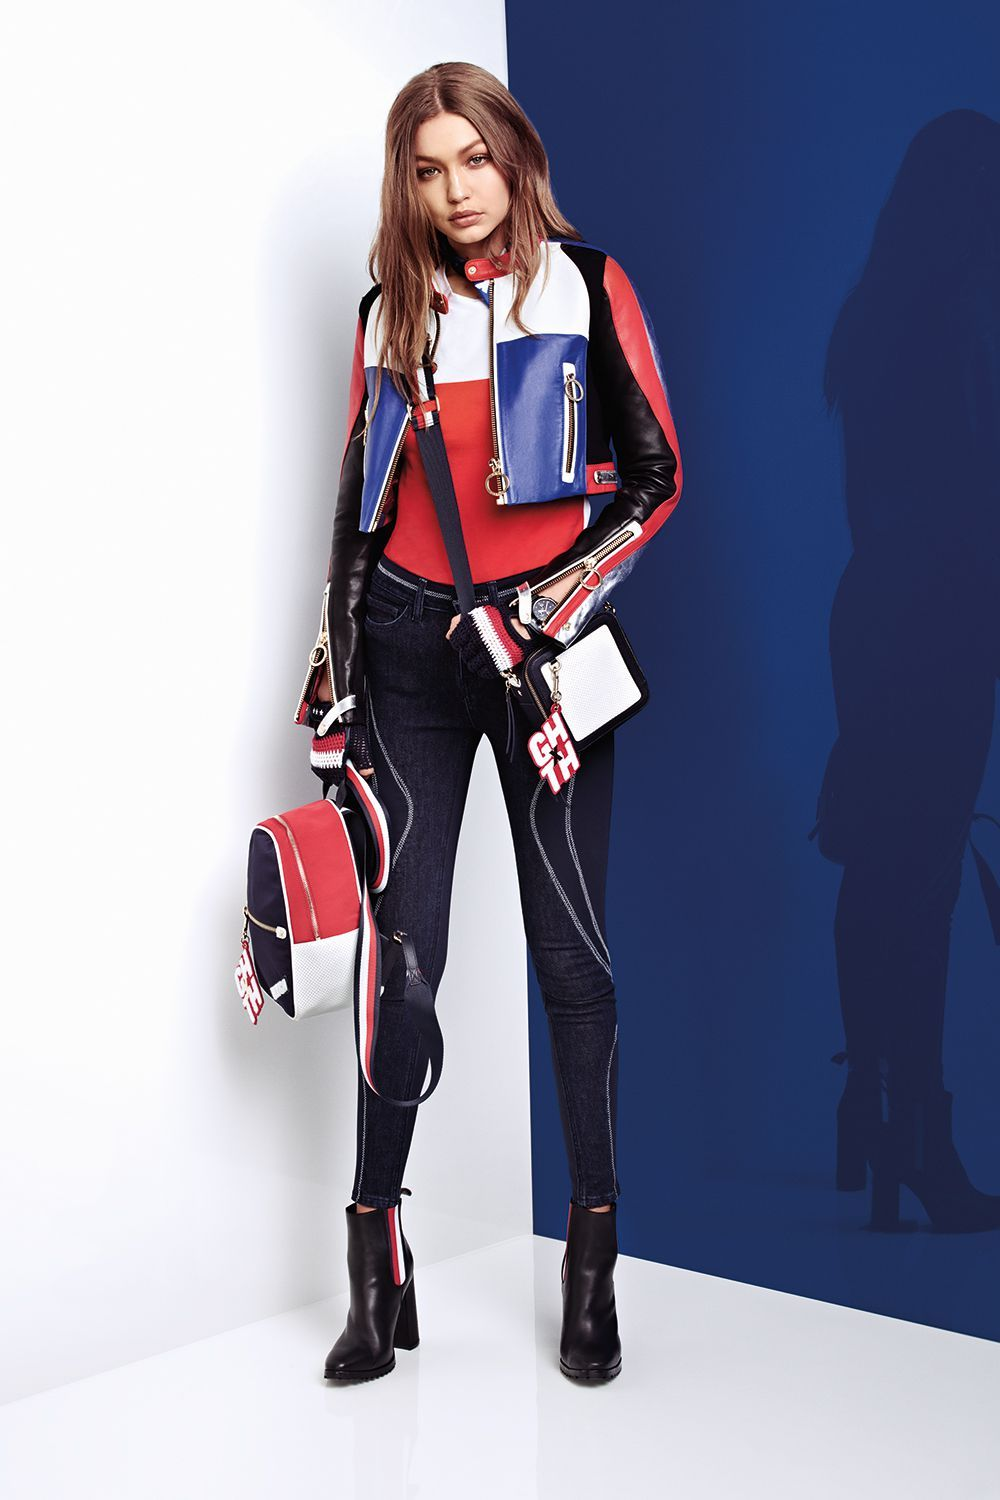 46380eff1 Gigi Hadid and Tommy Hilfiger Unveil a New Racing-Inspired Collection -  HarpersBAZAAR.com